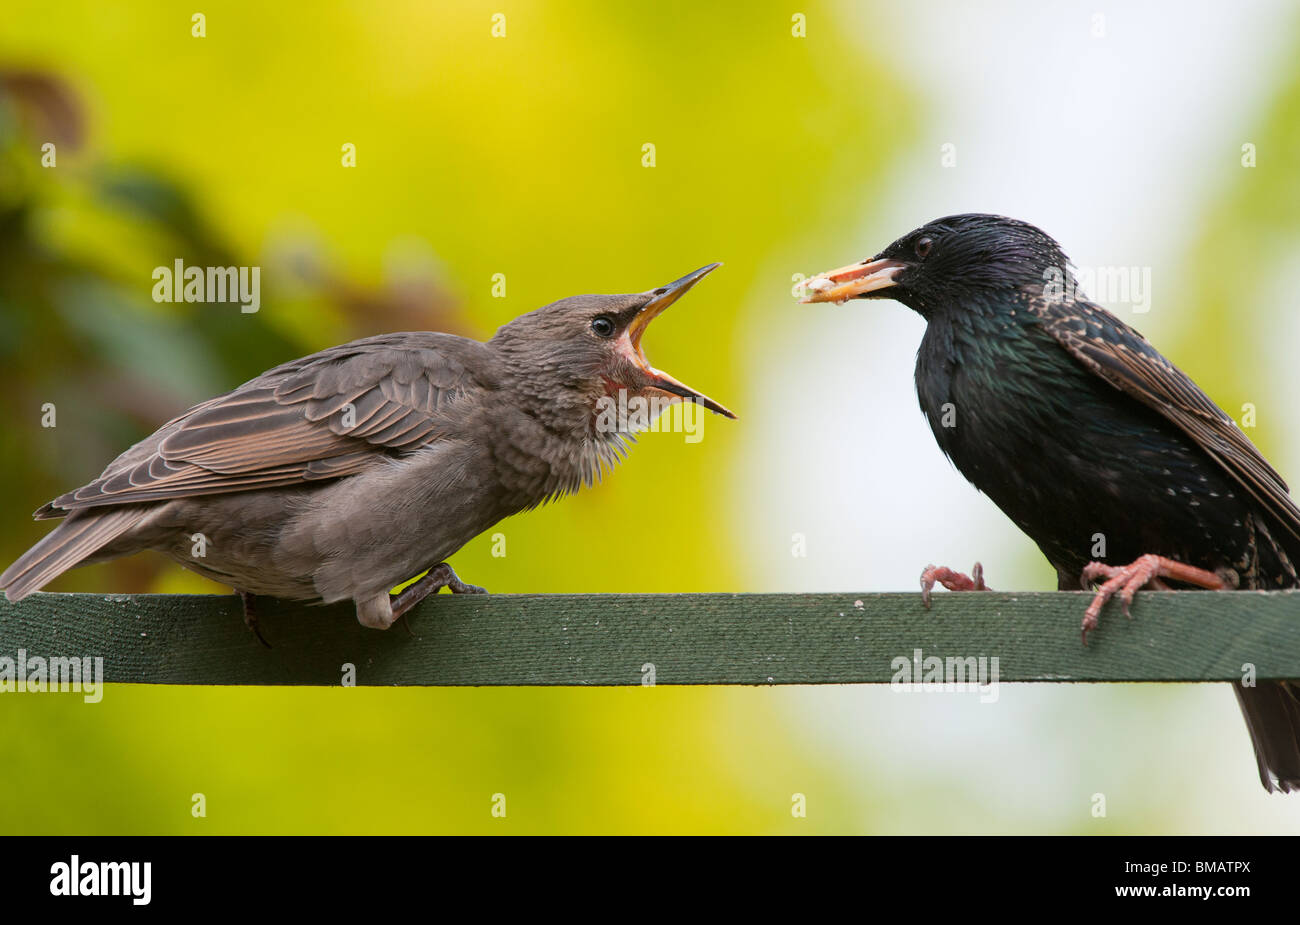 Sturnus vulgaris. Starling feeding a young fledgling Stock Photo